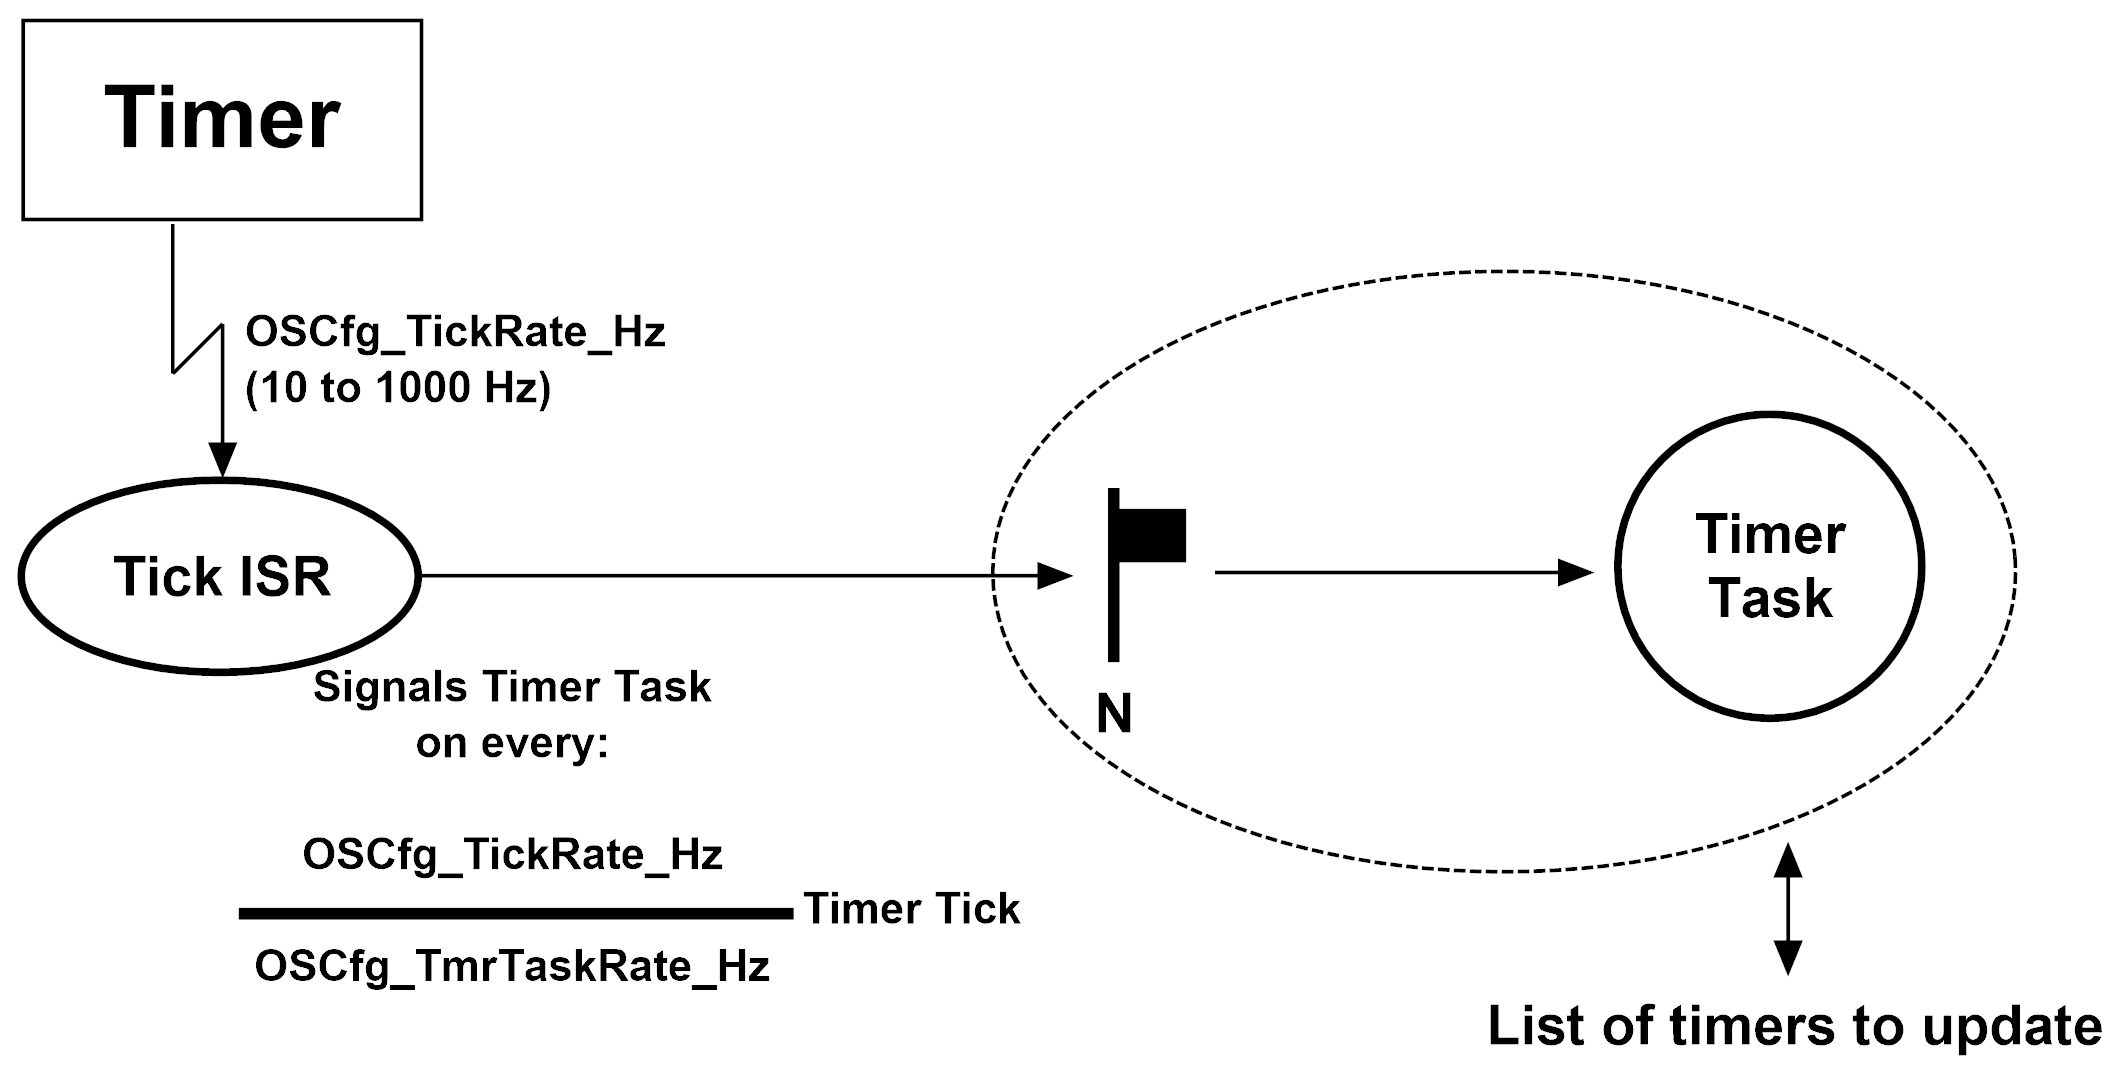 Figure - The Timer Task